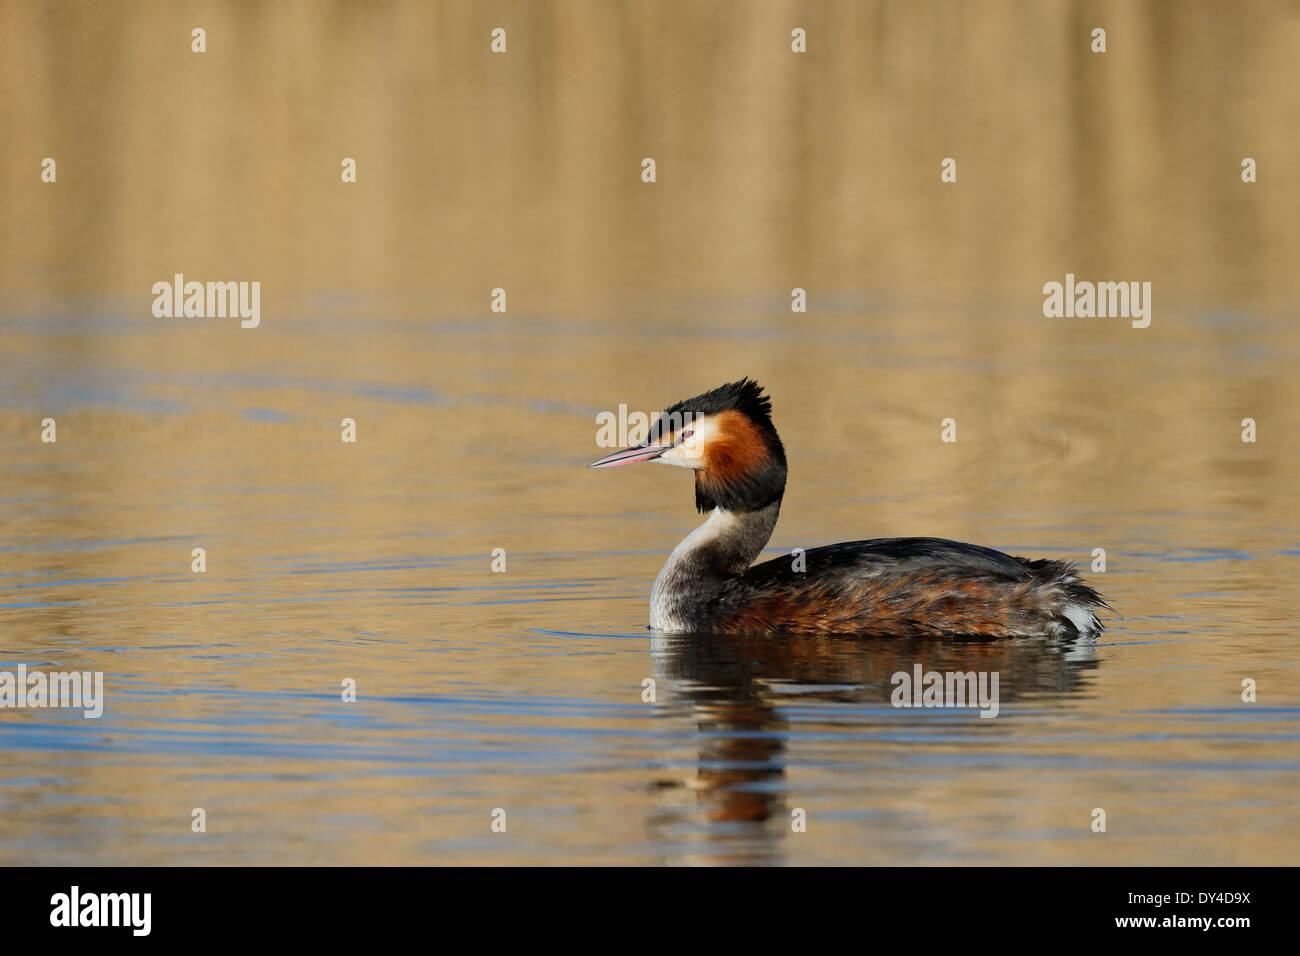 Great-crested grebe, Podiceps cristatus, single bird on water, Shropshire, March 2014 - Stock Image